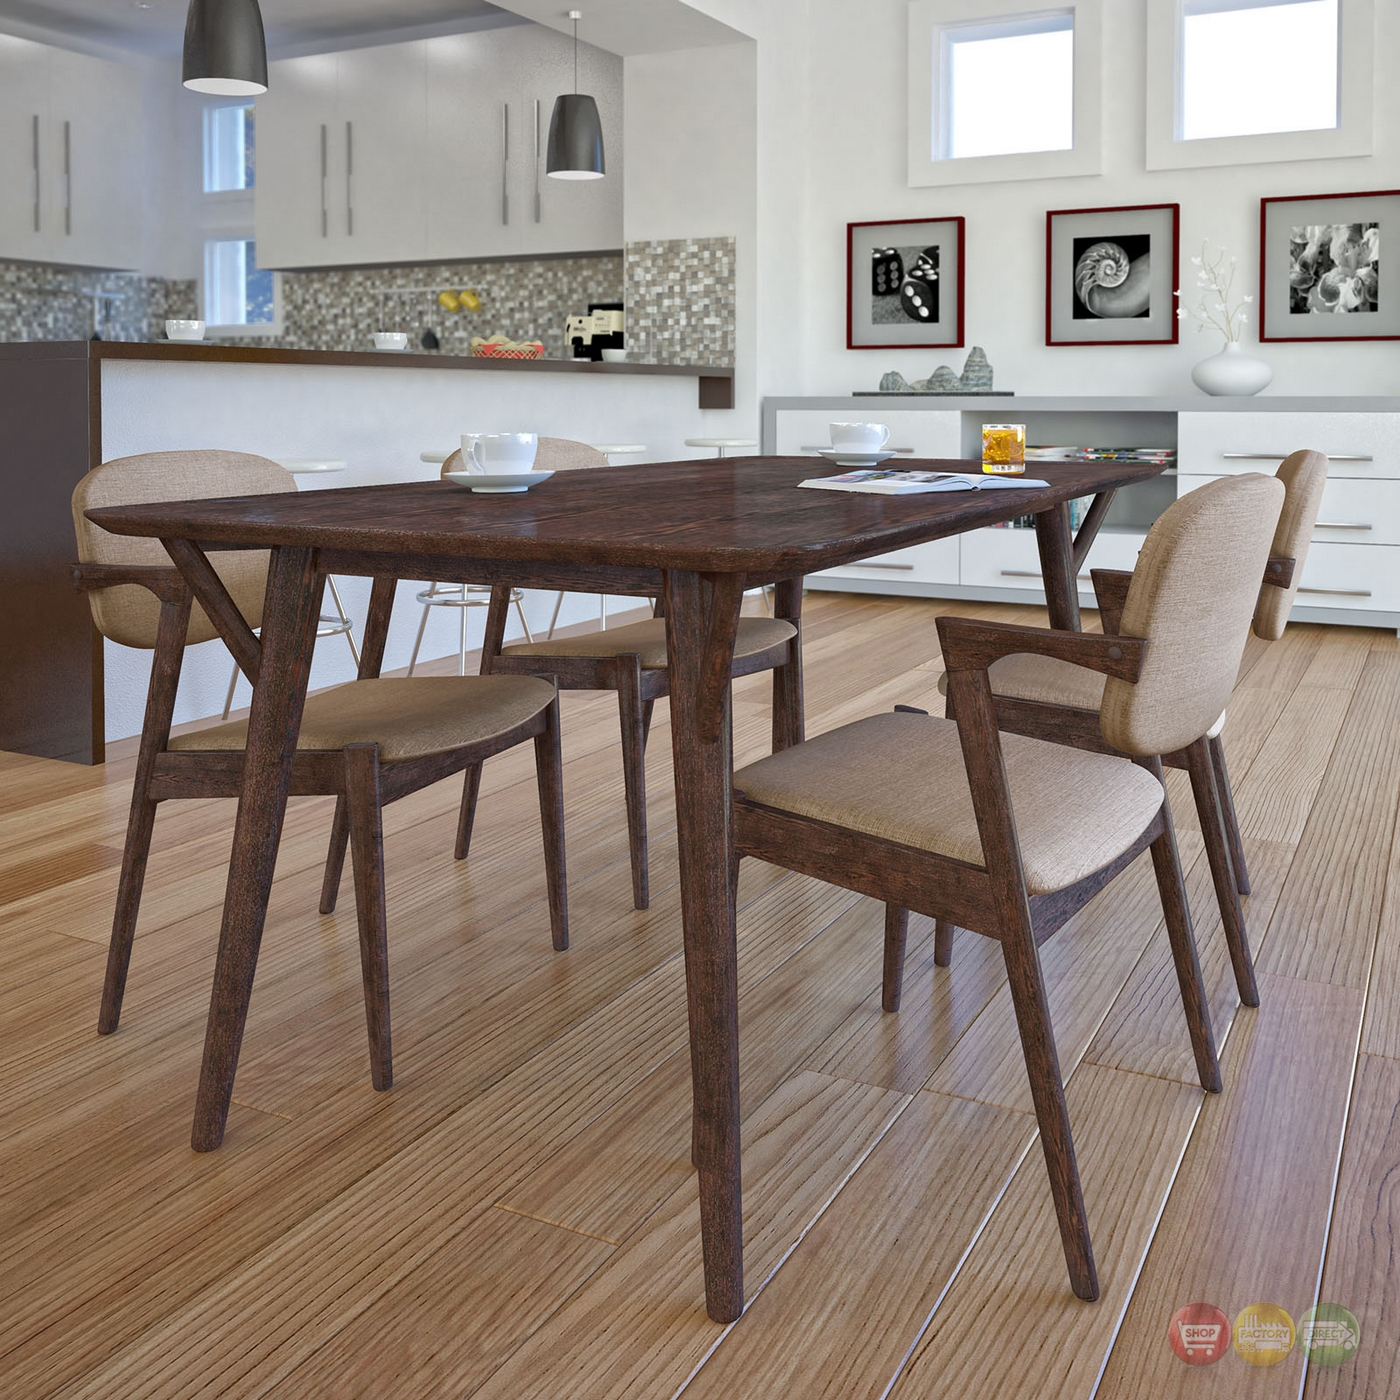 Mid Century Modern Dining: Mid-century Modern 5pc Wooden Dining Set With Upholstered